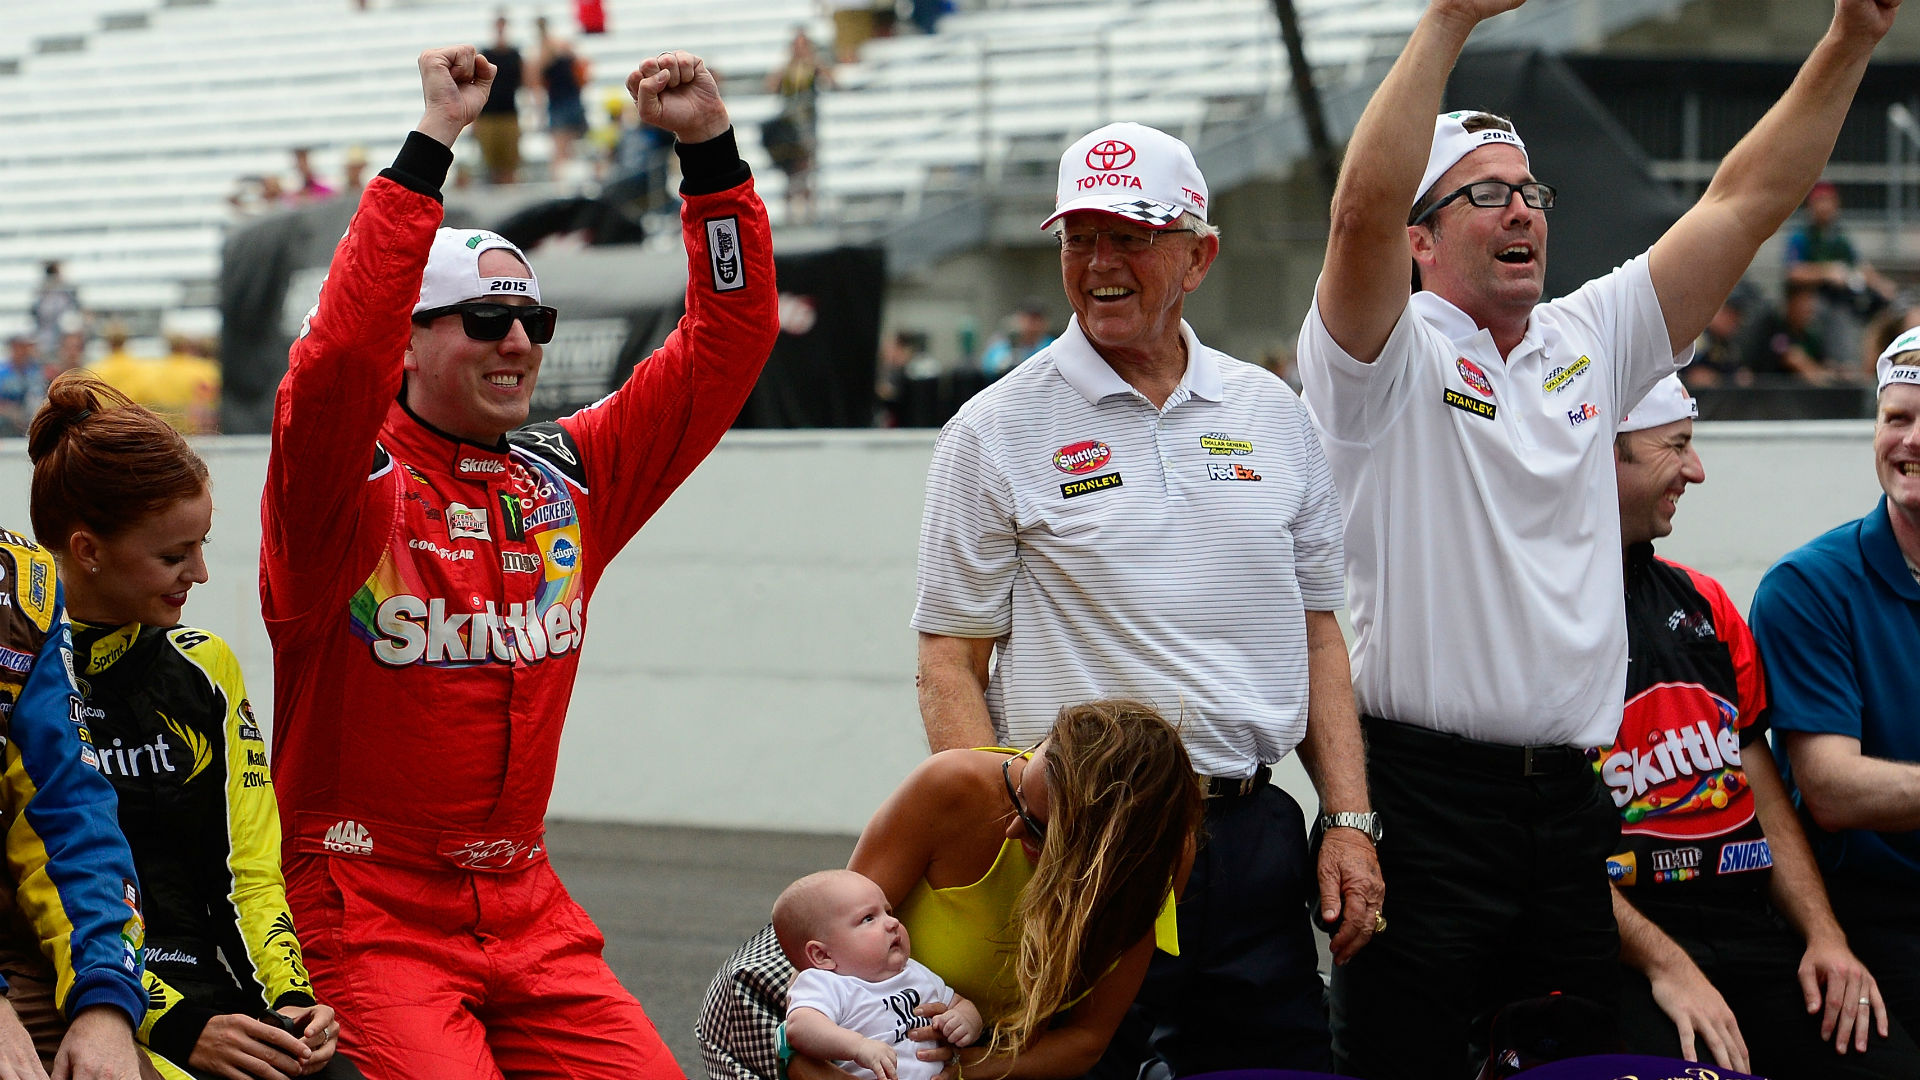 Kyle Busch continues to make history with Indy performance